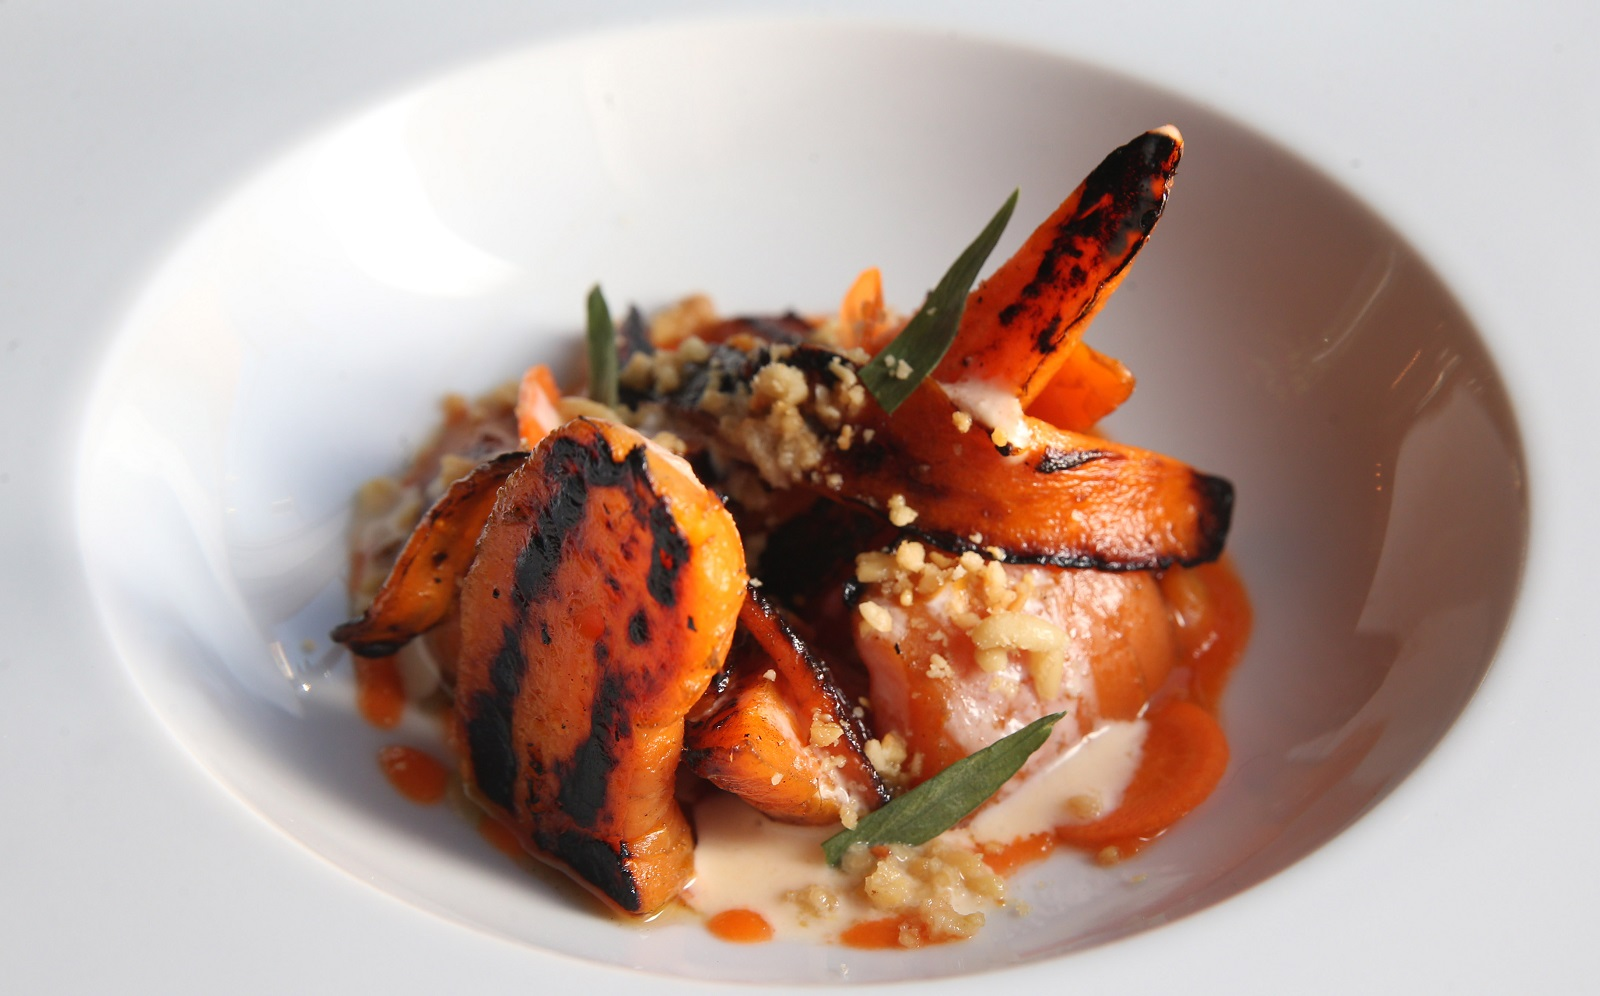 Carte Blanche's roasted carrot salad is made with charred carrots, carrot yogurt, spruce oil and pine nuts. (Sharon Cantillon/Buffalo News)